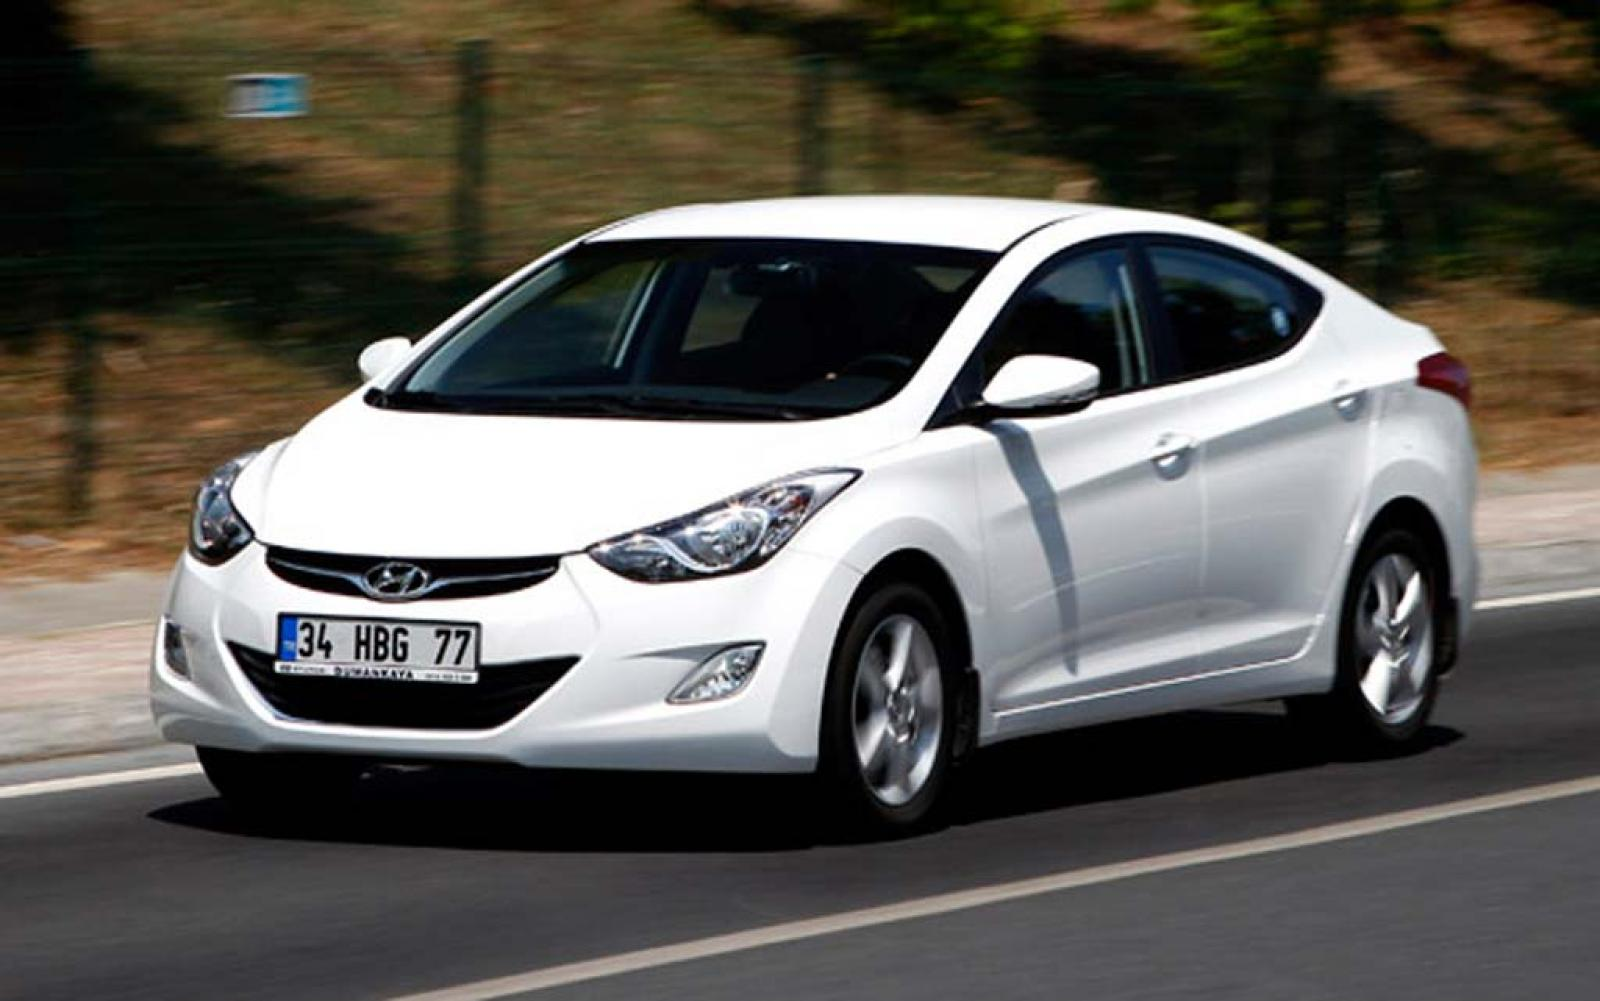 2015 Hyundai Elantra Information And Photos Zombiedrive